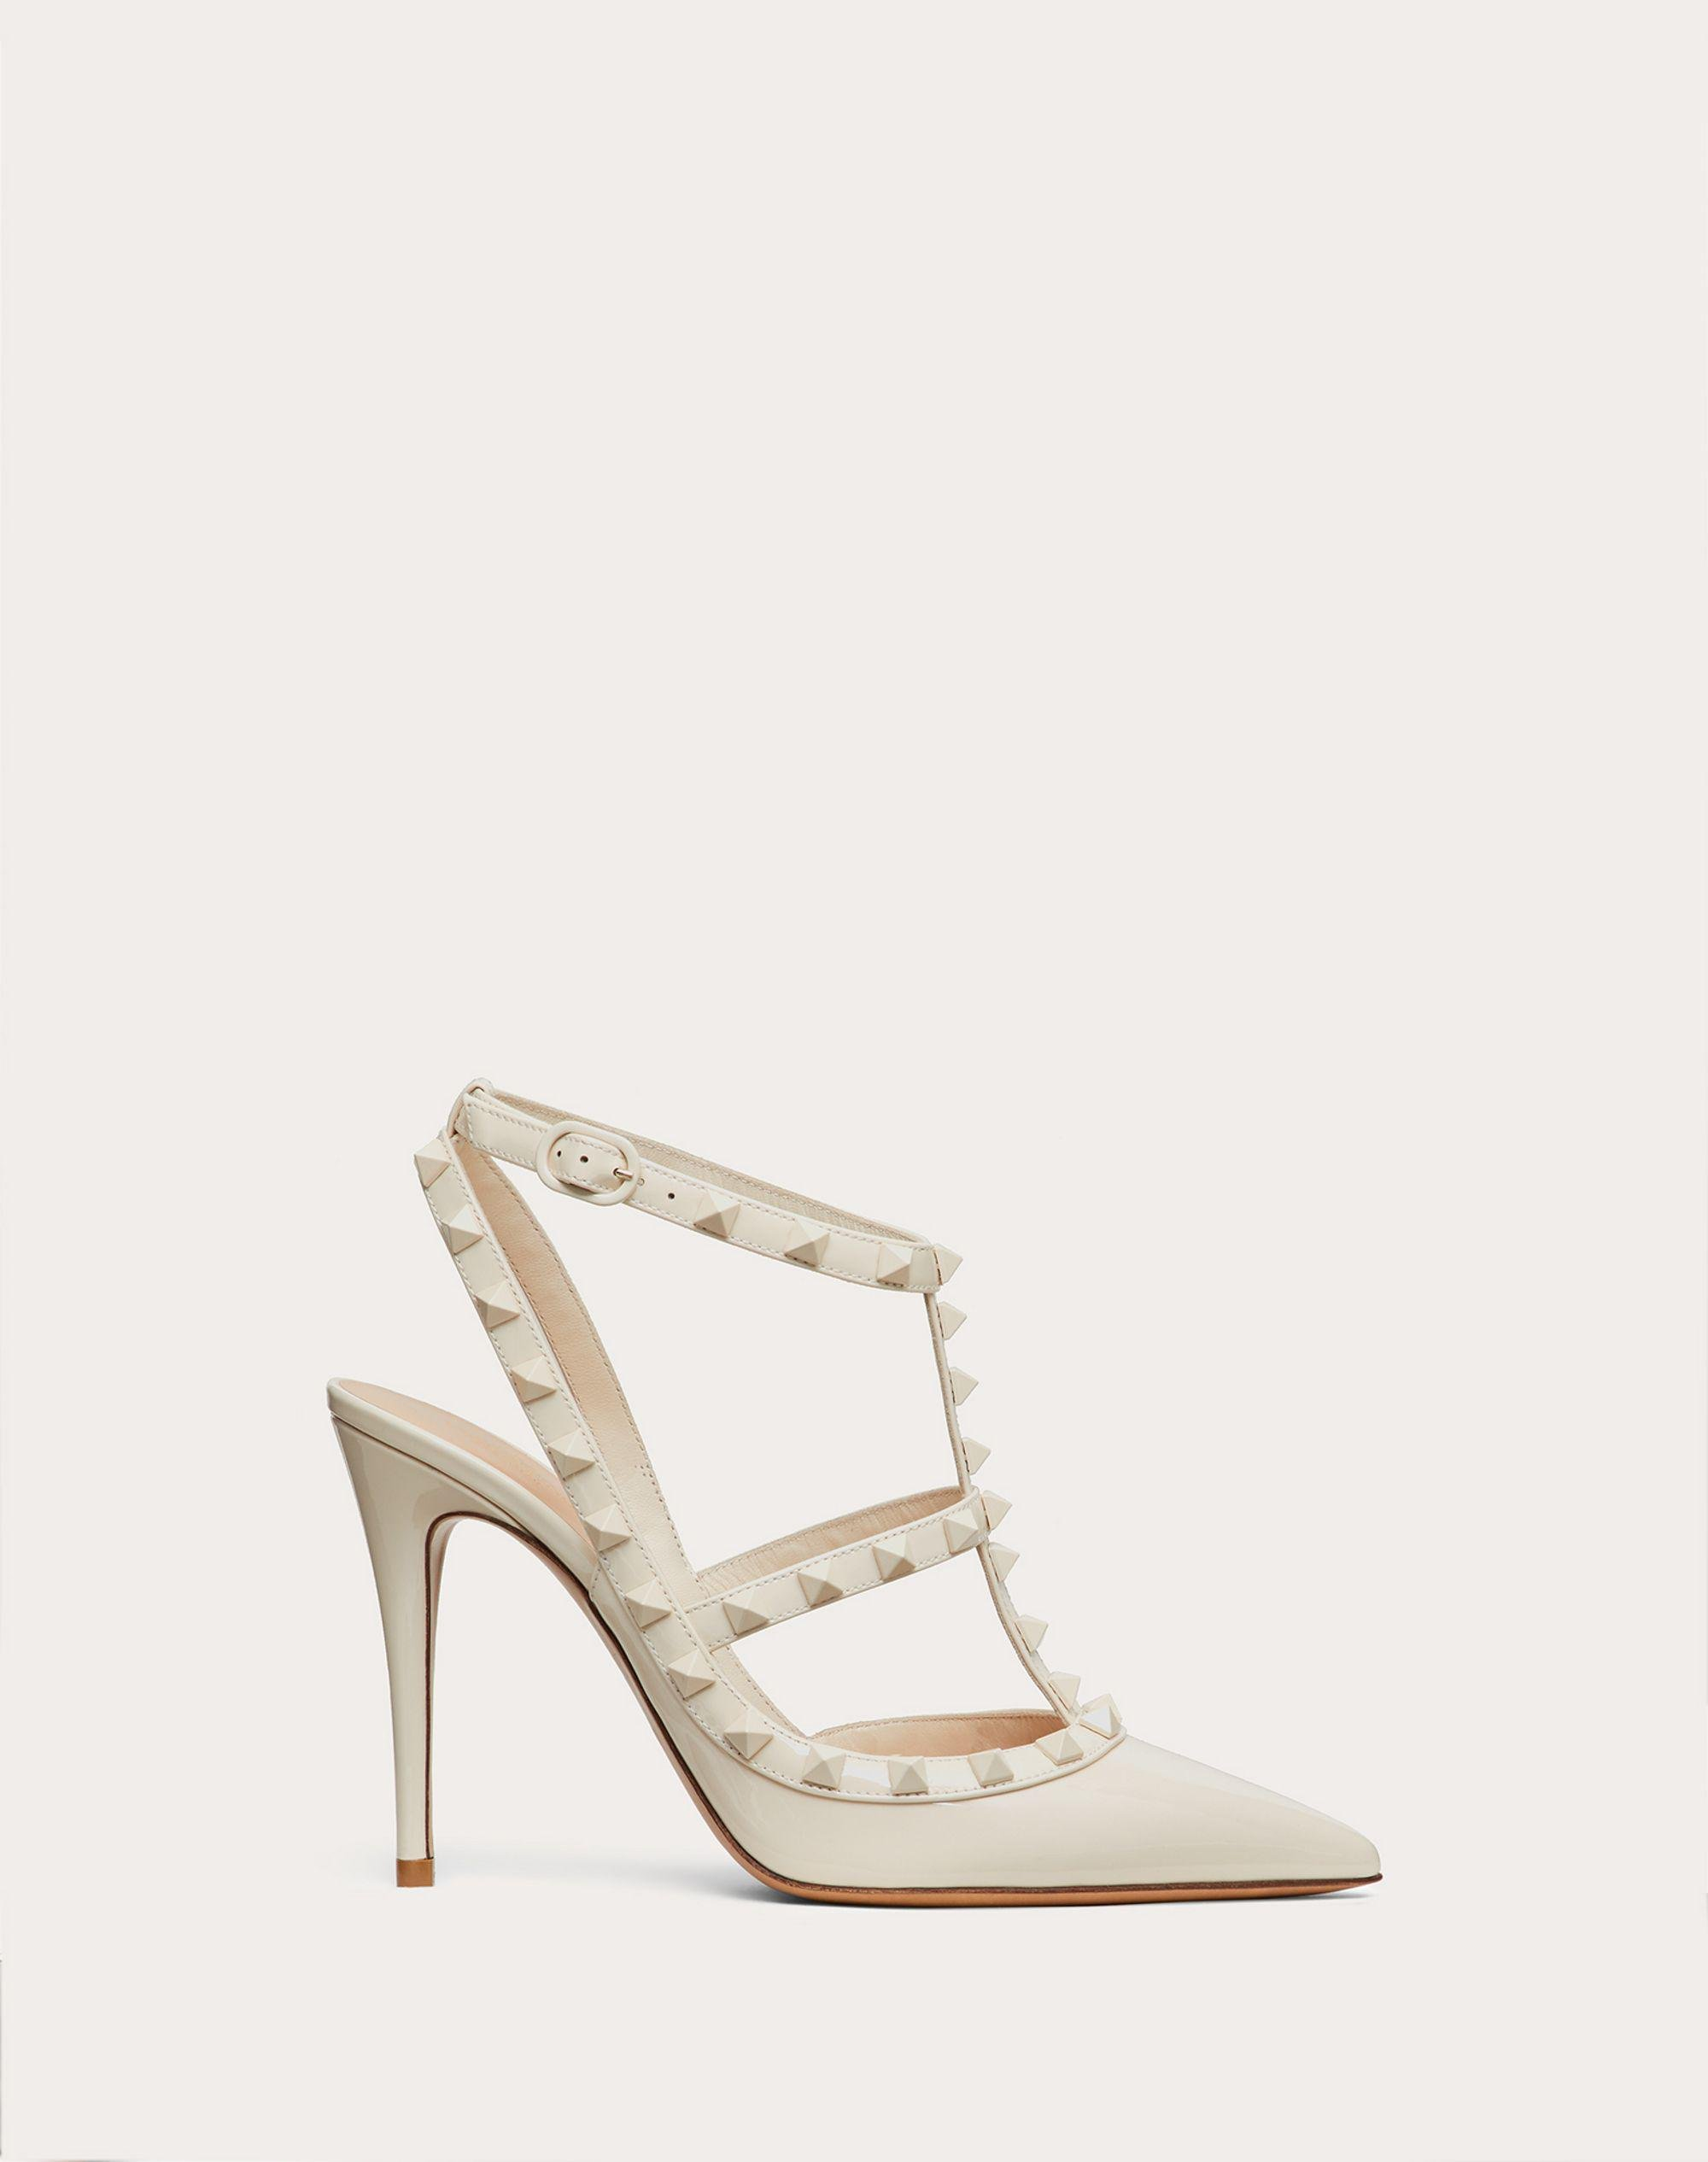 ROCKSTUD ANKLE STRAP PATENT-LEATHER PUMP WITH TONAL STUDS 100 MM